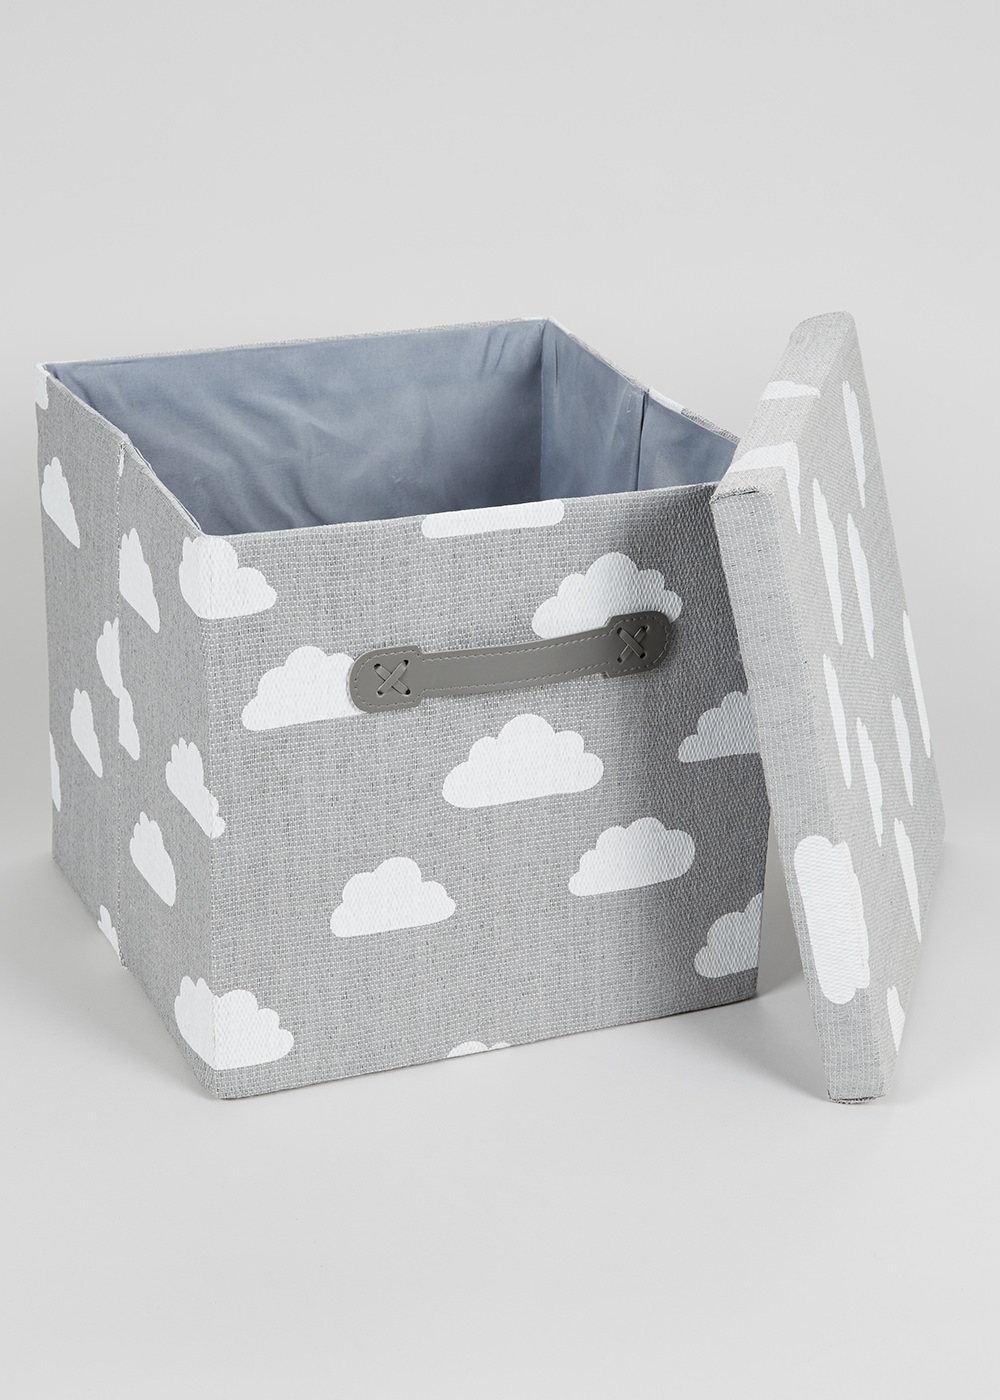 Cloud Foldable Fabric Storage Box (33cm X 33cm X 31cm) – Matalan For Most Recent Matalan Canvas Wall Art (View 11 of 15)